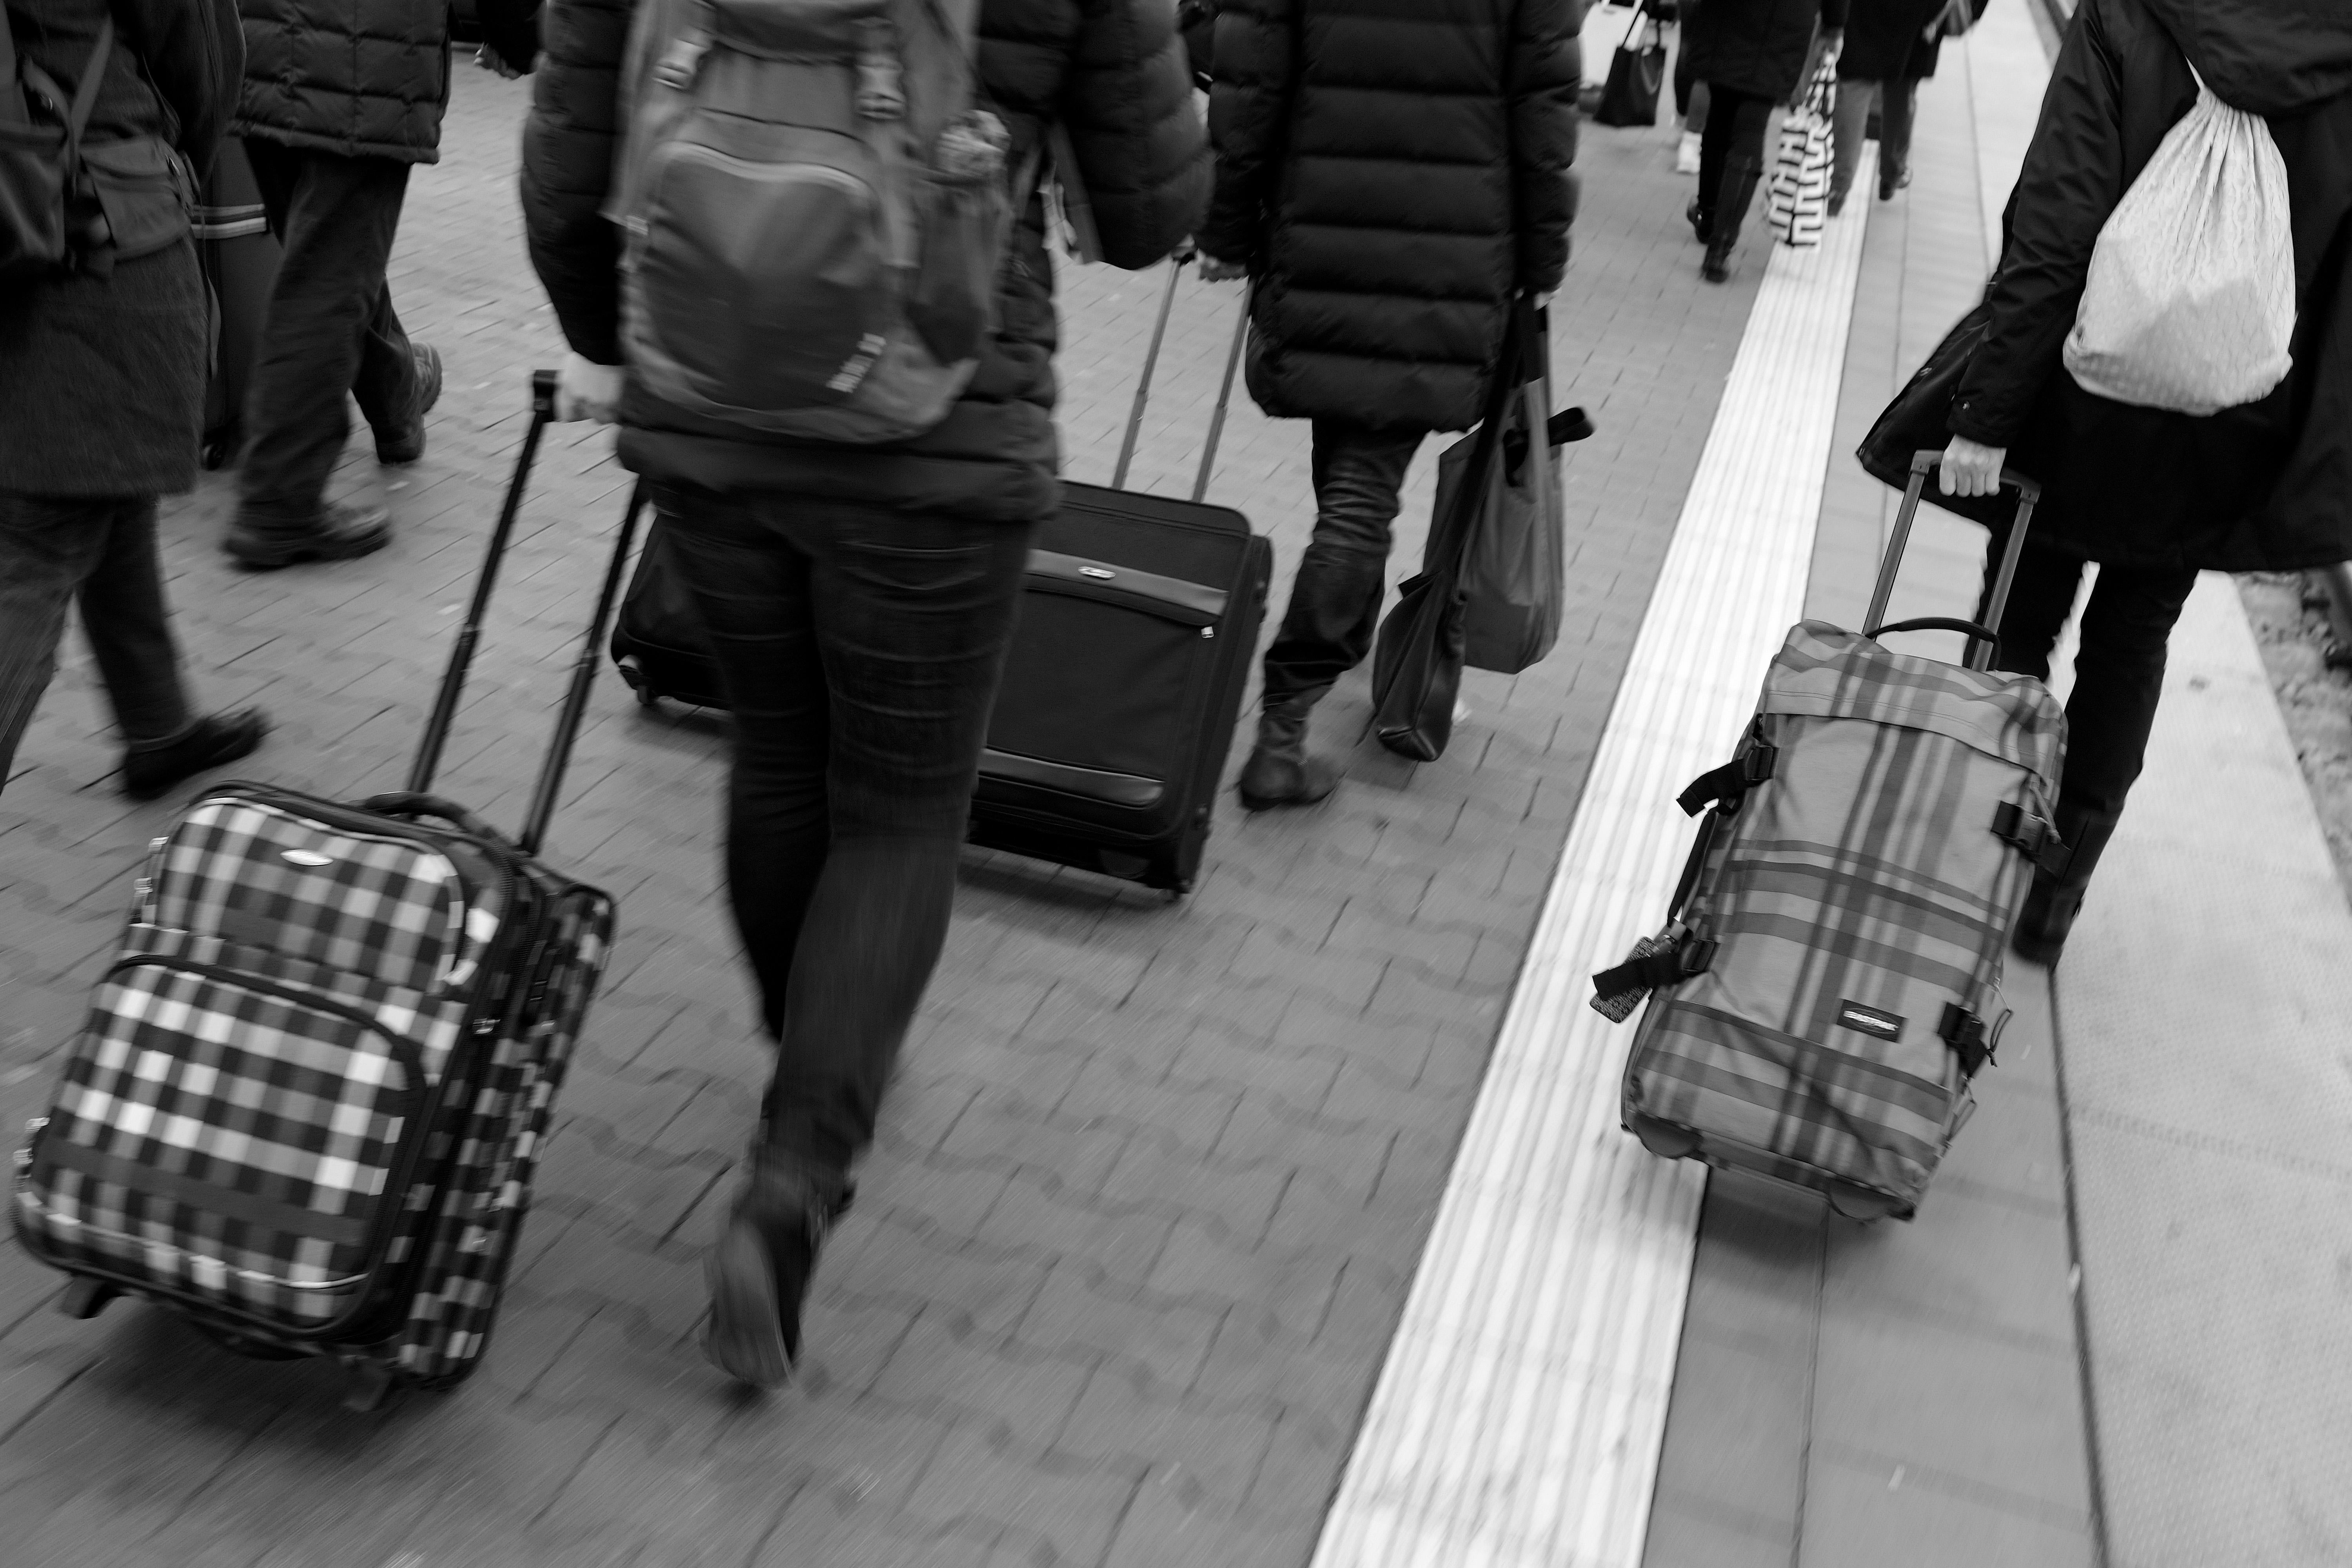 MUNICH, GERMANY - DECEMBER 15:  (EDITOR'S NOTE: Image has been shot in black and white. Color version not available.) Passengers pull their suitcases on a platform after arriving on a train of German state railway carrier Deutsche Bahn at Hauptbahnhof main railway station on December 15, 2017 in Munich, Germany. The season before Christmas is always a busy annual travel period across Germany. (Photo by Sean Gallup/Getty Images)